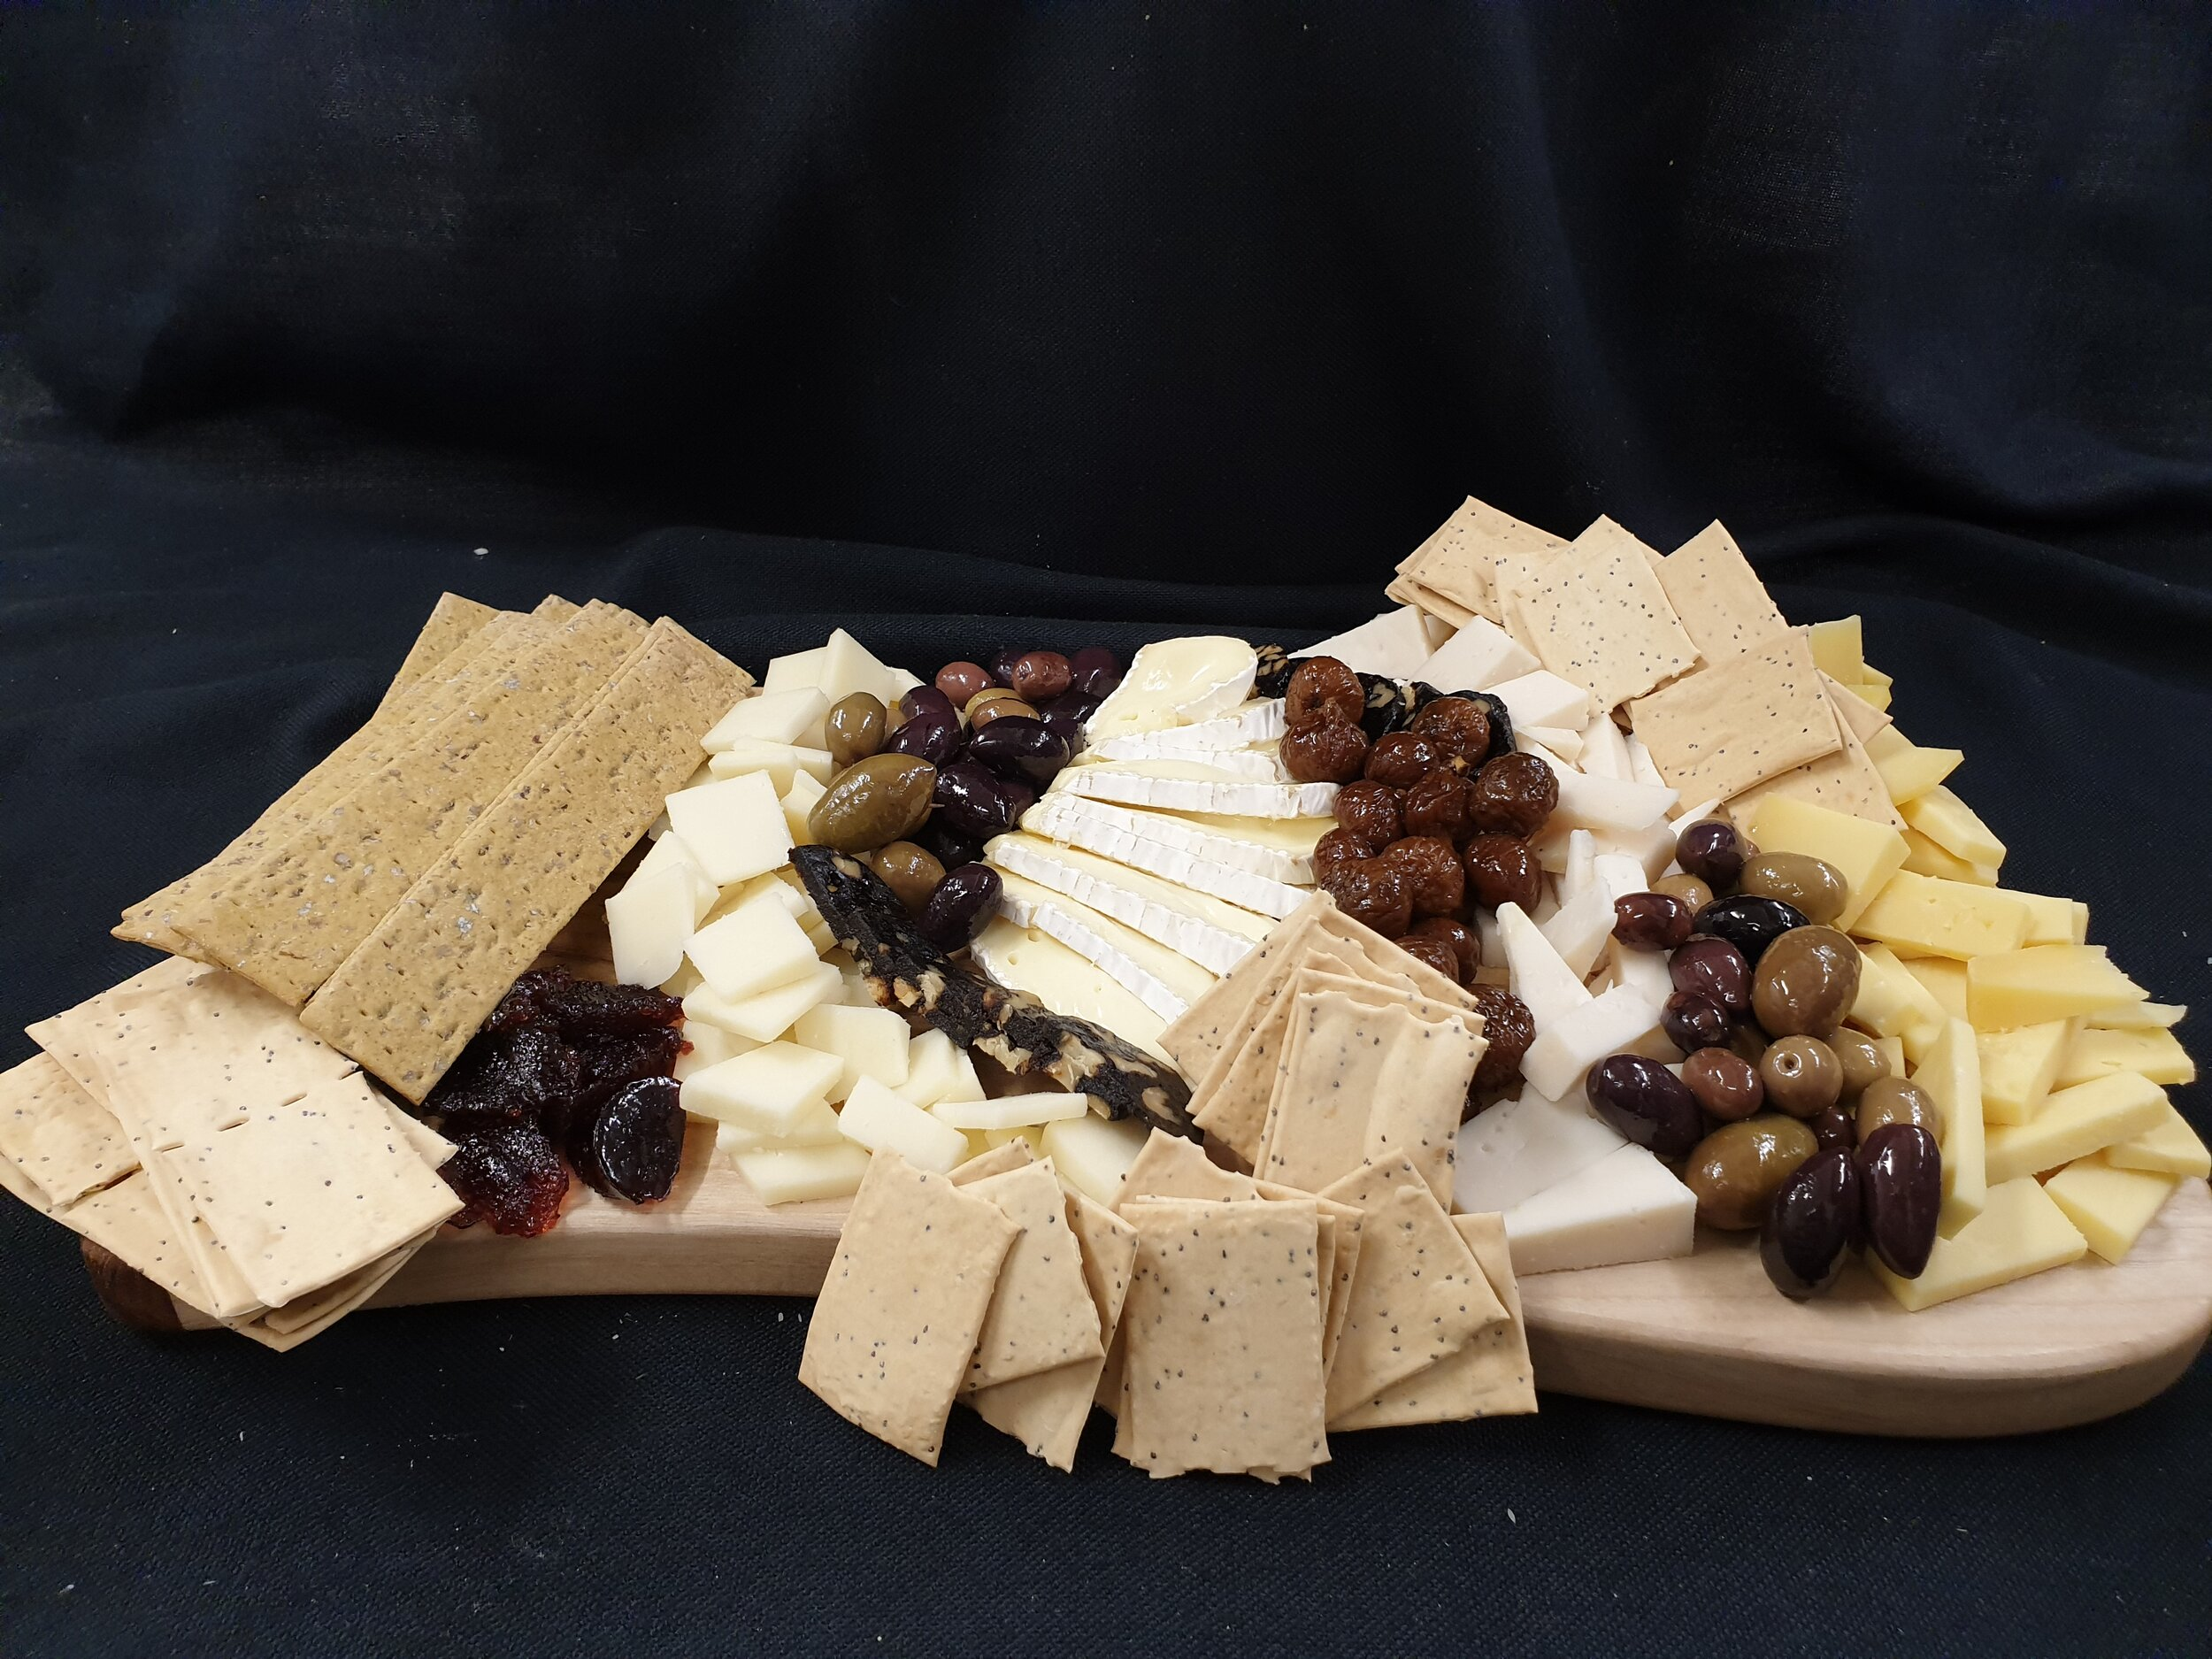 Our latest Creation - The Artisan:Filled with a selection of hand made crackers, Australian grown olives and an exquisite line of cheese from across the globe